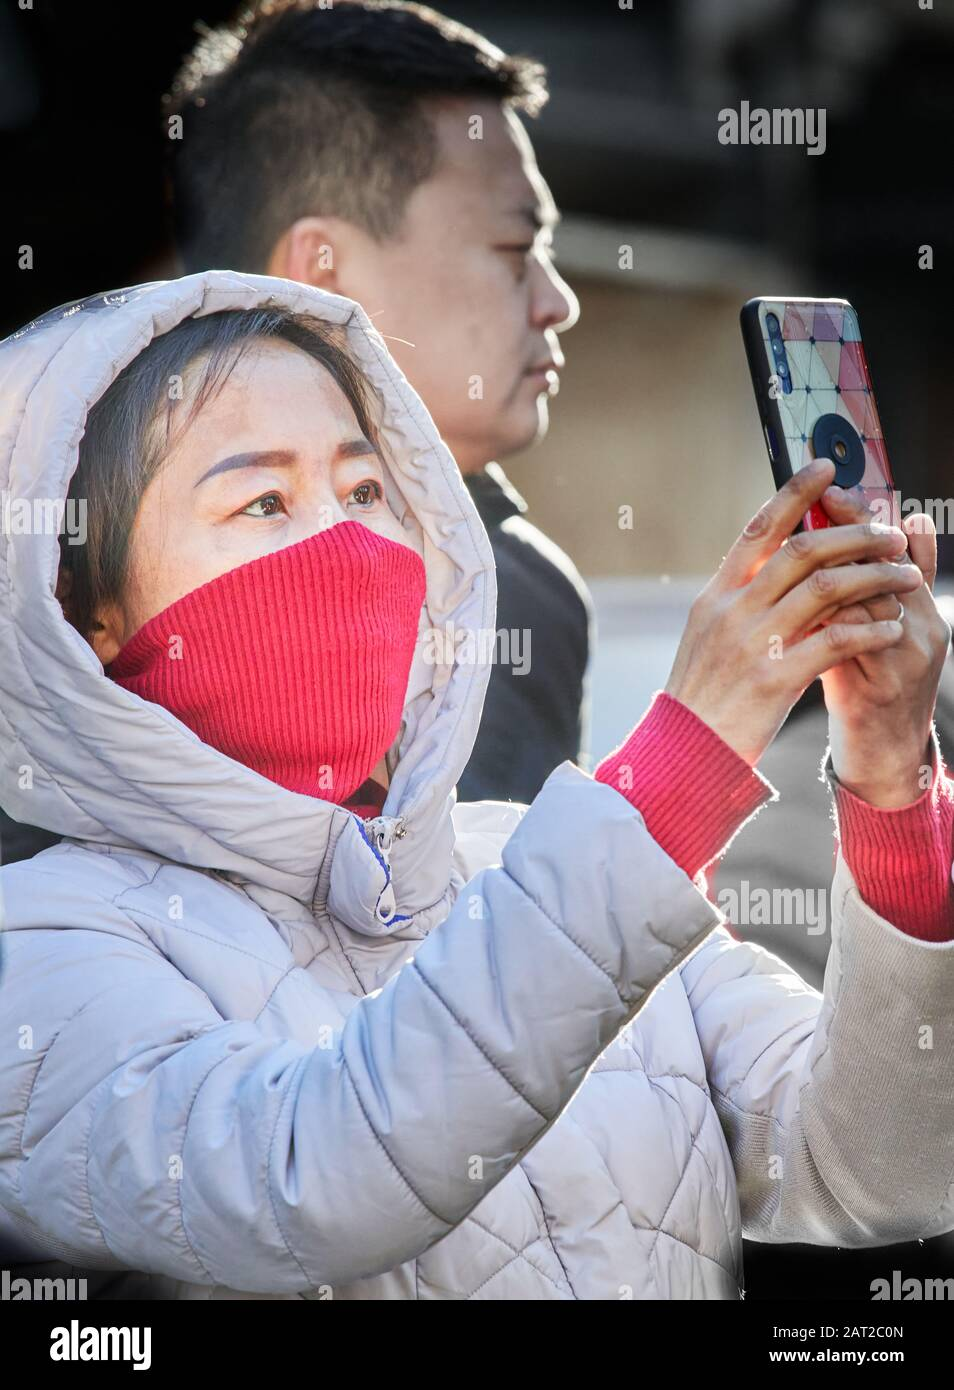 Face mask worn by a chinese tourist outside Trinity college, Cambridge, England, on 30 january 2020, to prevent catching the coronavirus flu. Stock Photo